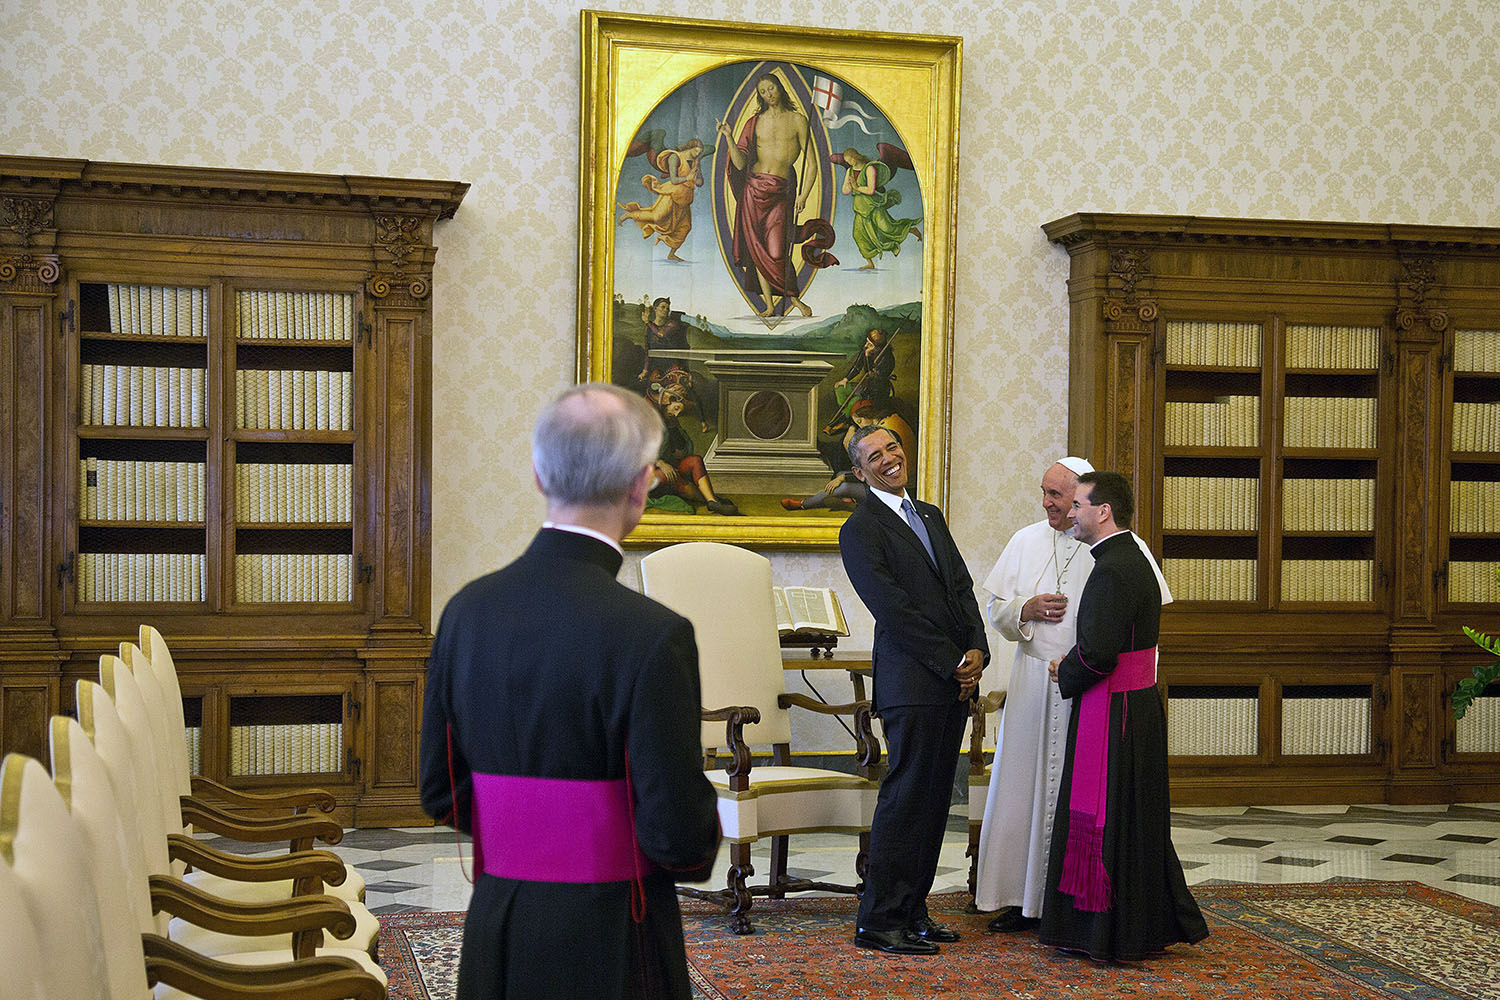 Mar. 27, 2014. President Barack Obama jokes with Pope Francis in the  Apostolic Palace, Private Library at the Vatican, Rome, Italy.